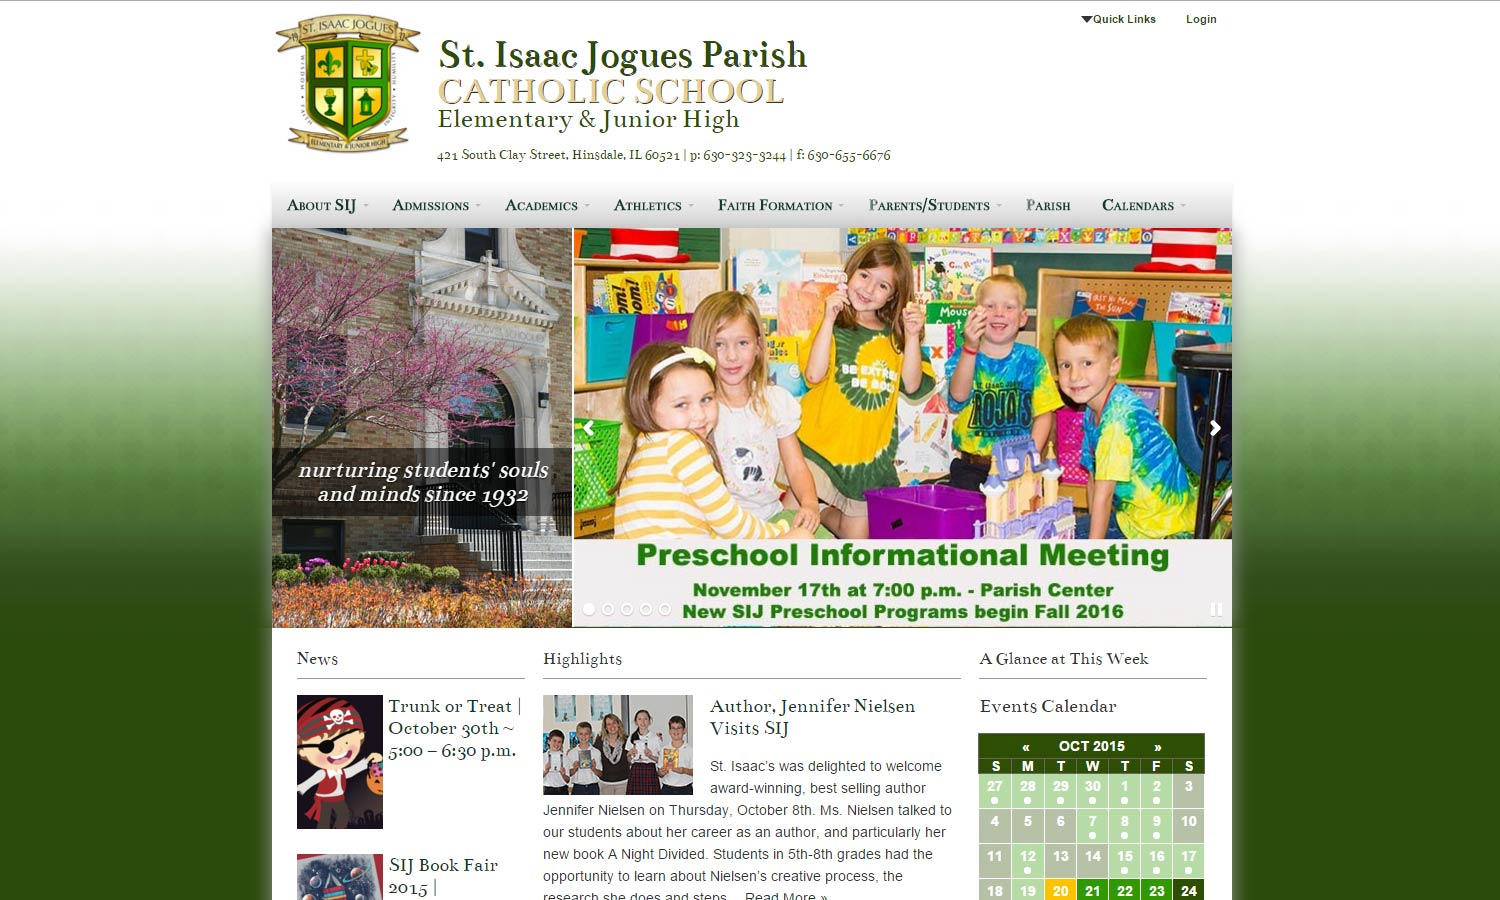 St. Isaac Jogue Parish School